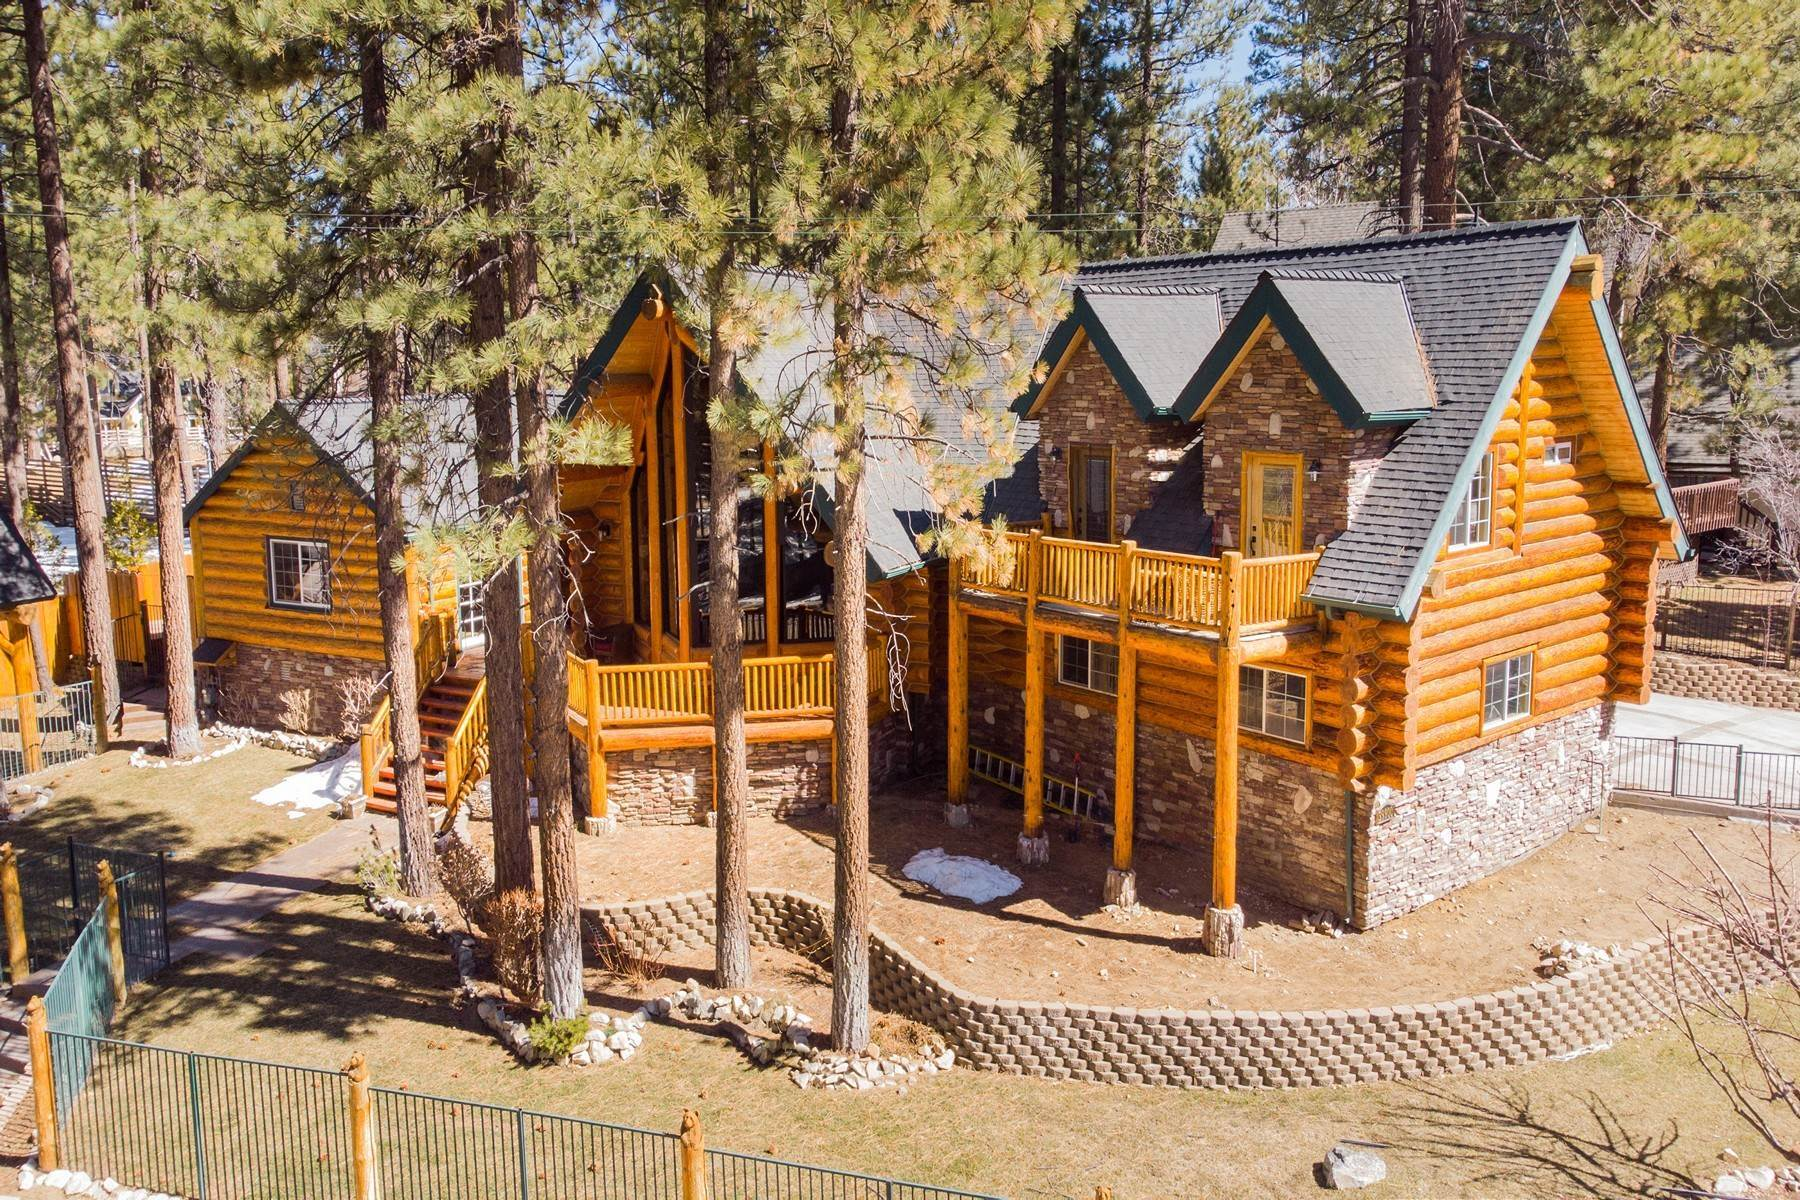 Single Family Homes for Sale at 39900 Forest Road, Big Bear Lake, California 92315 39900 Forest Road Big Bear Lake, California 92315 United States